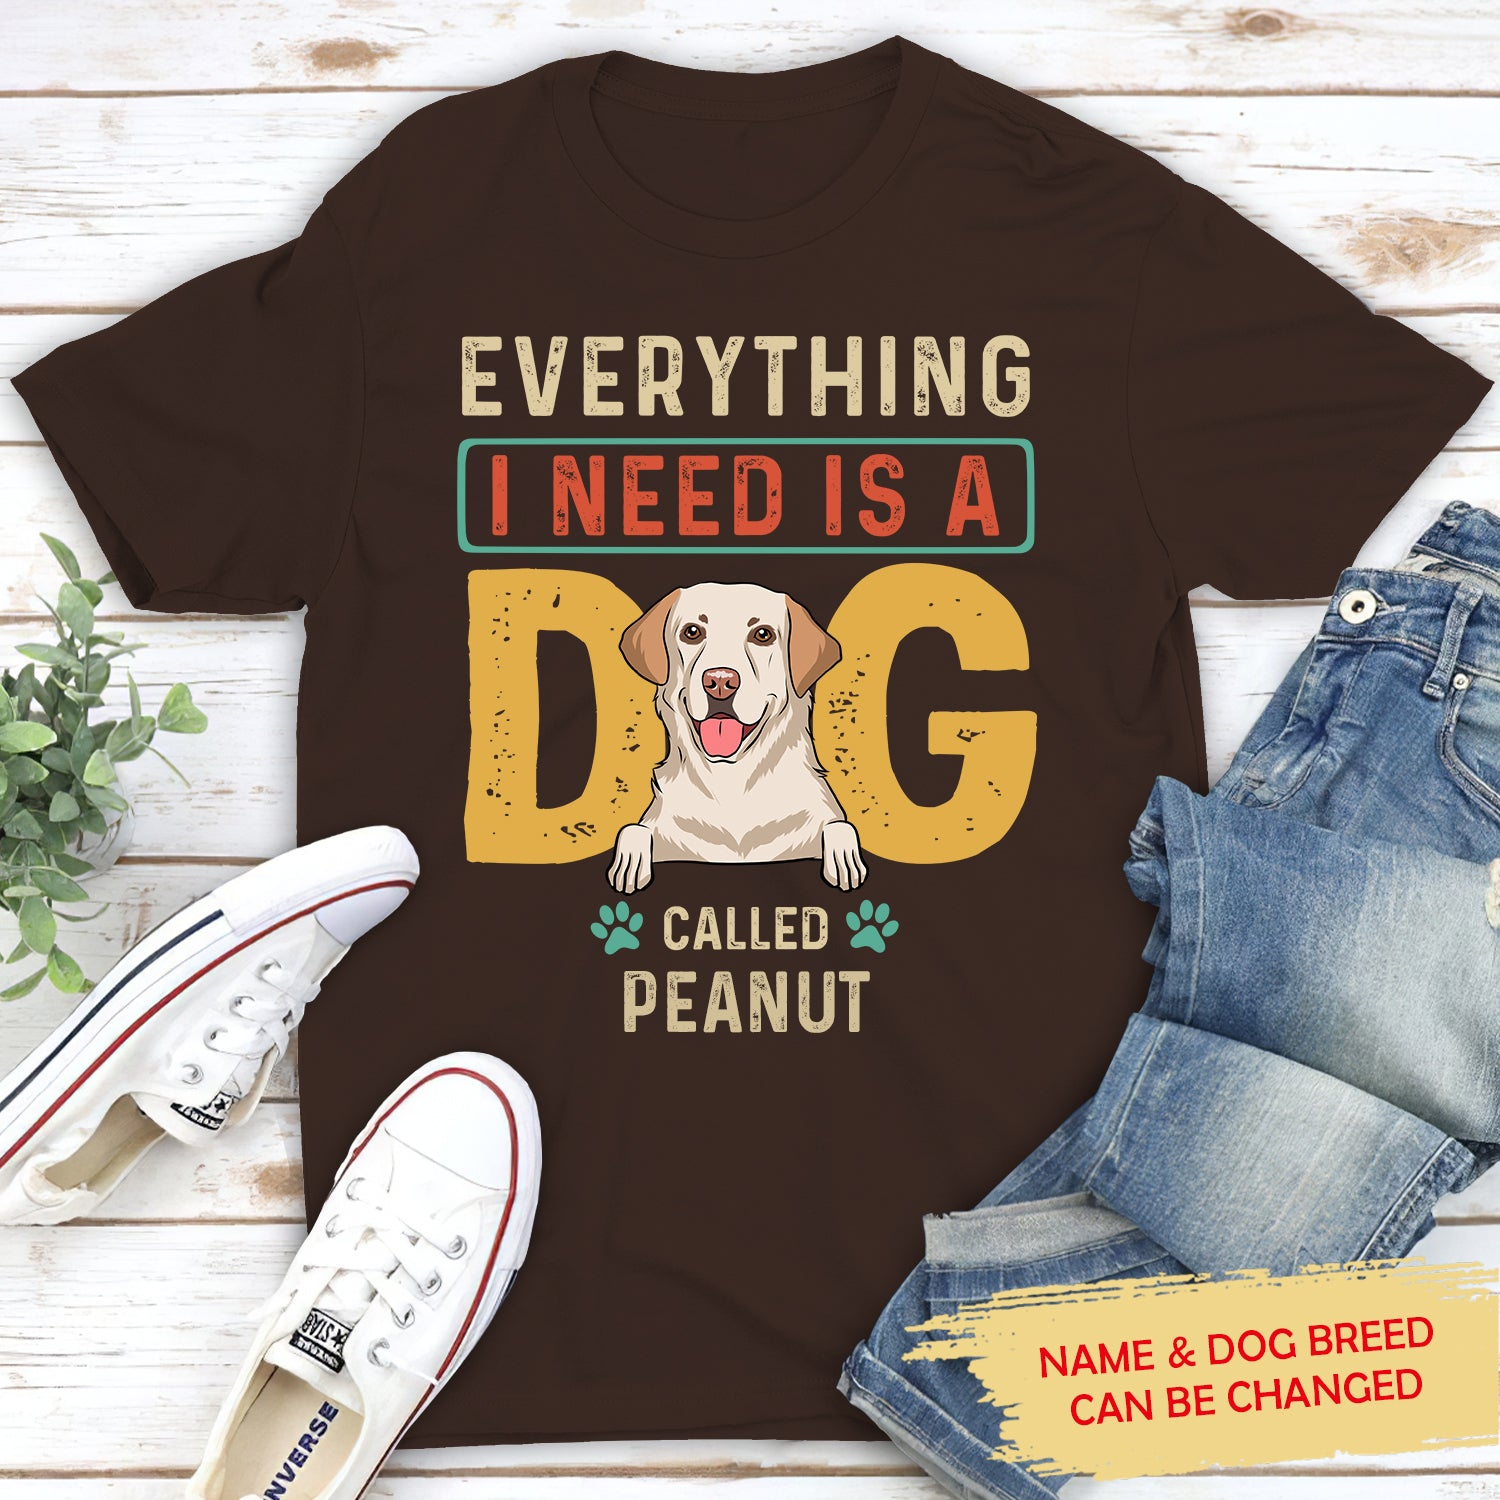 Everything I Need - Personalized Custom Unisex T-shirt